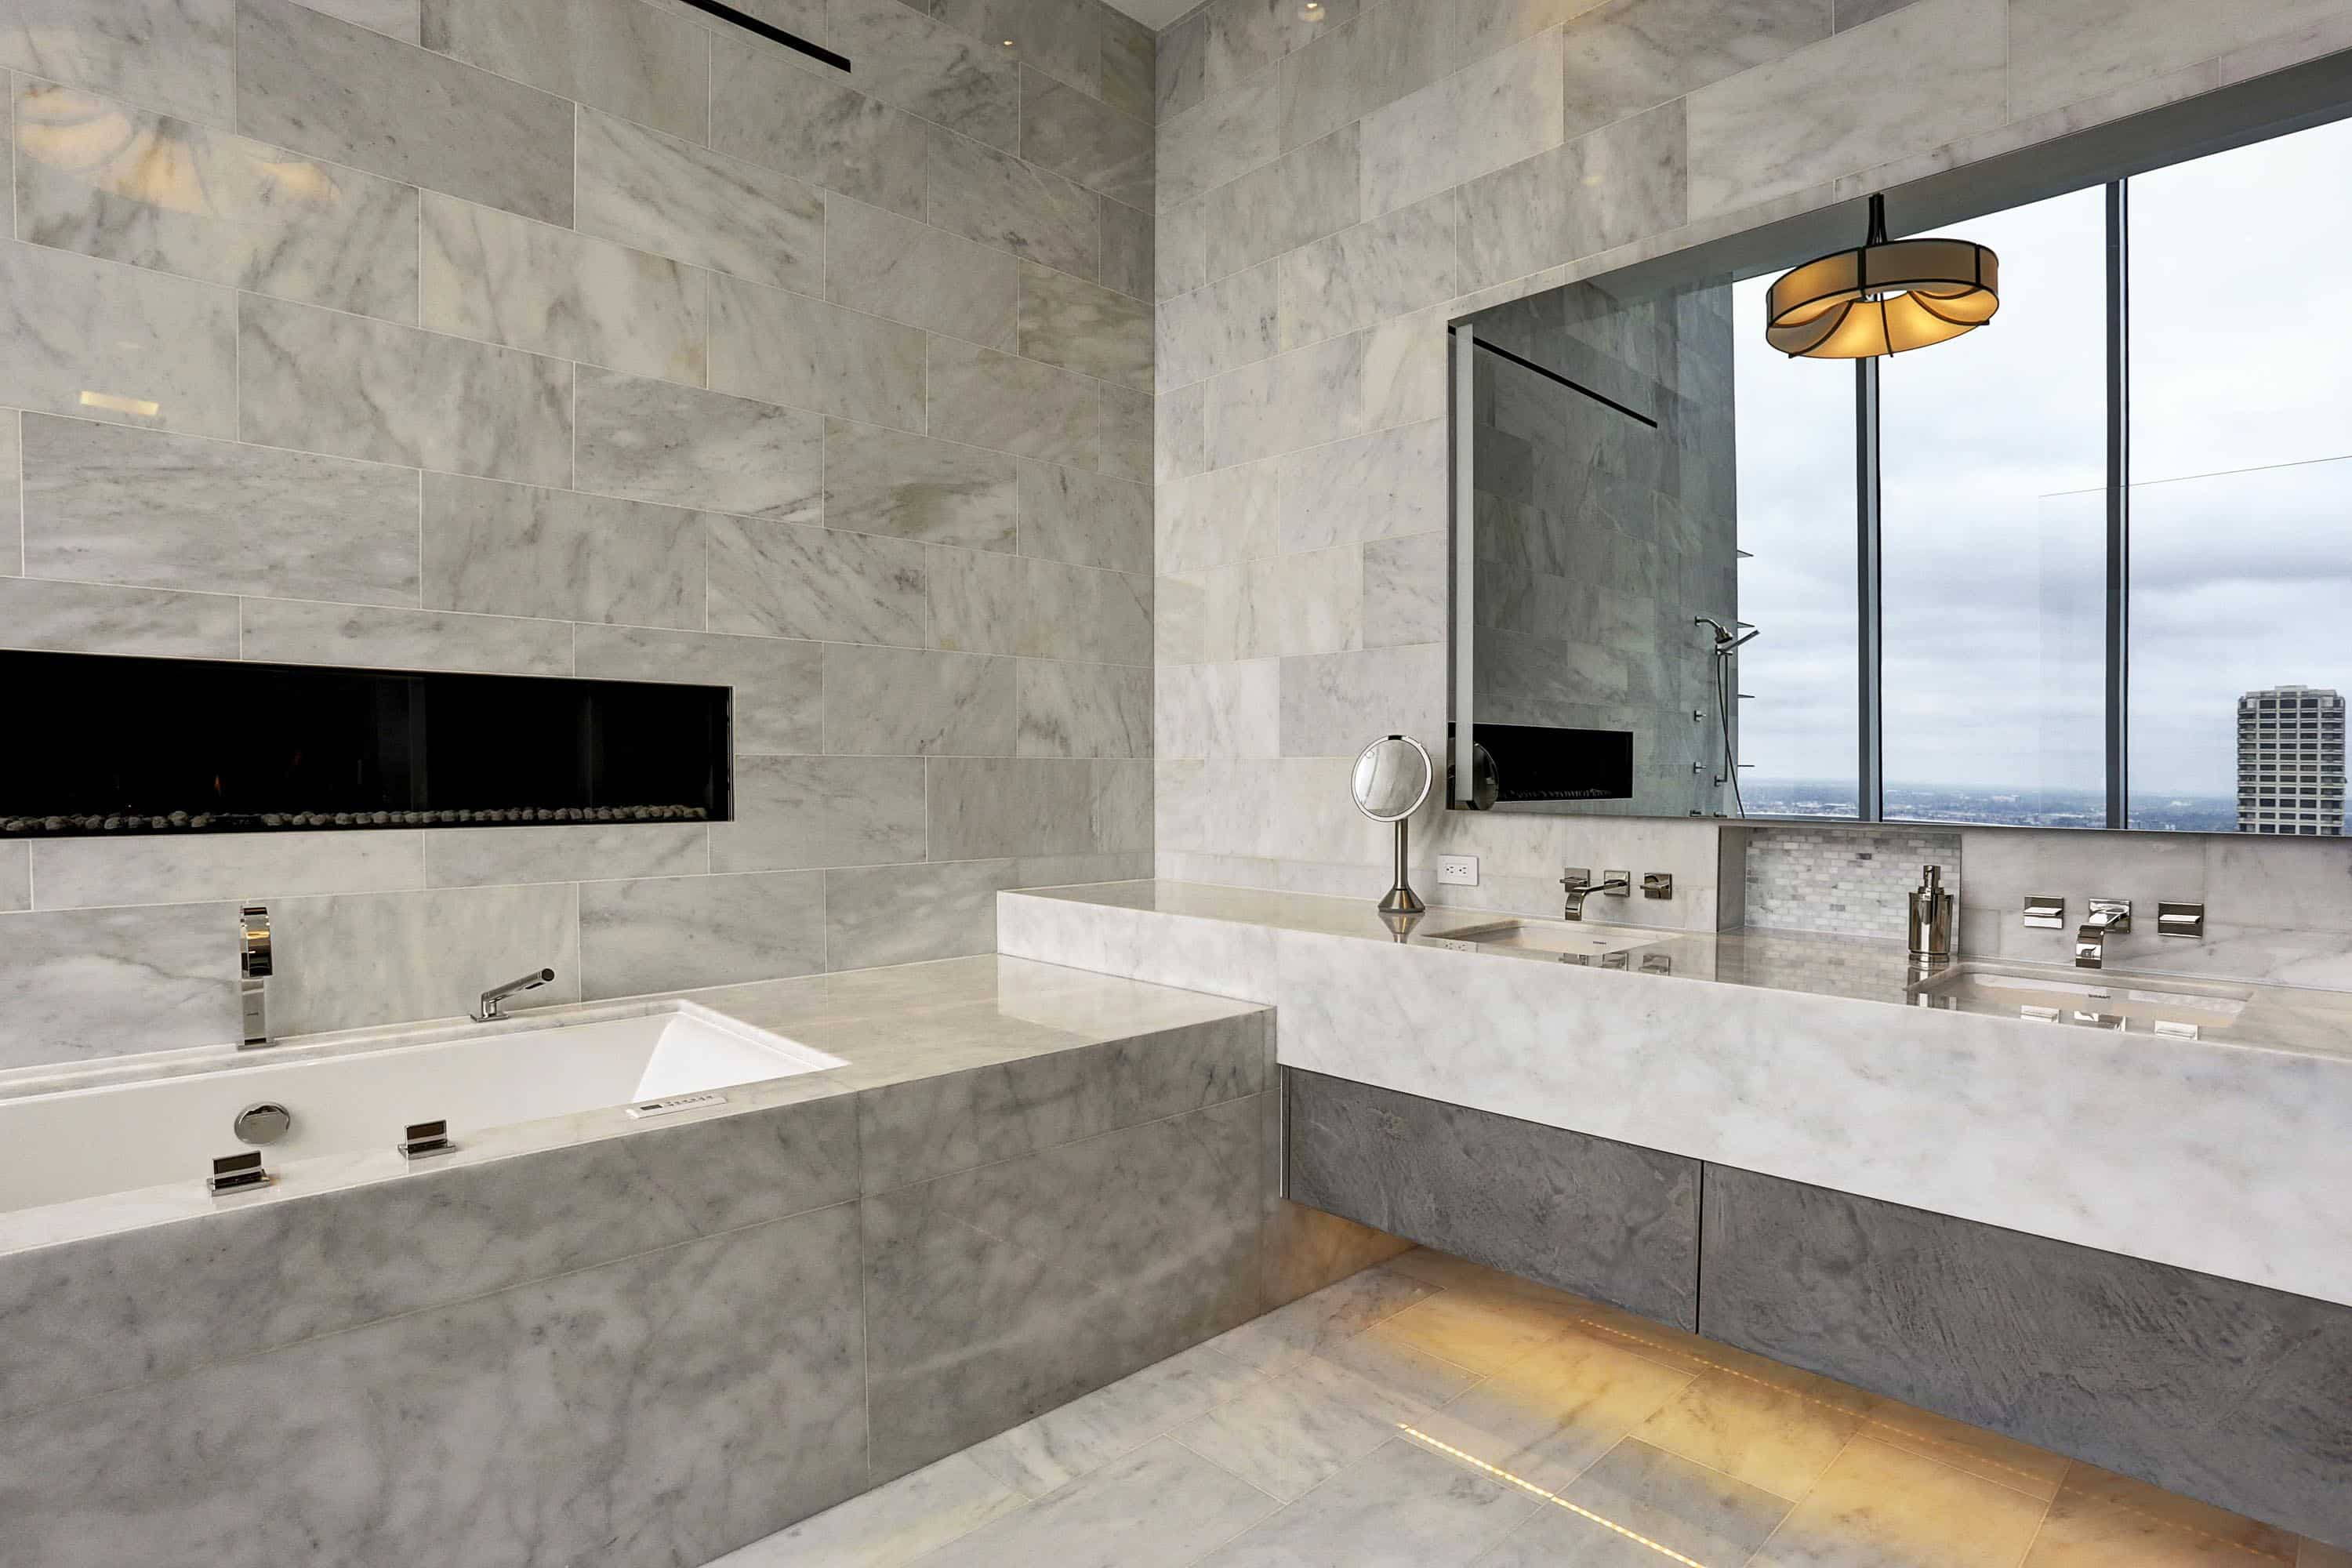 eggersmann design for this bathroom includes stone, stone, and more stone to accent the highrise city view and cozy ultra modern fireplace above the tub